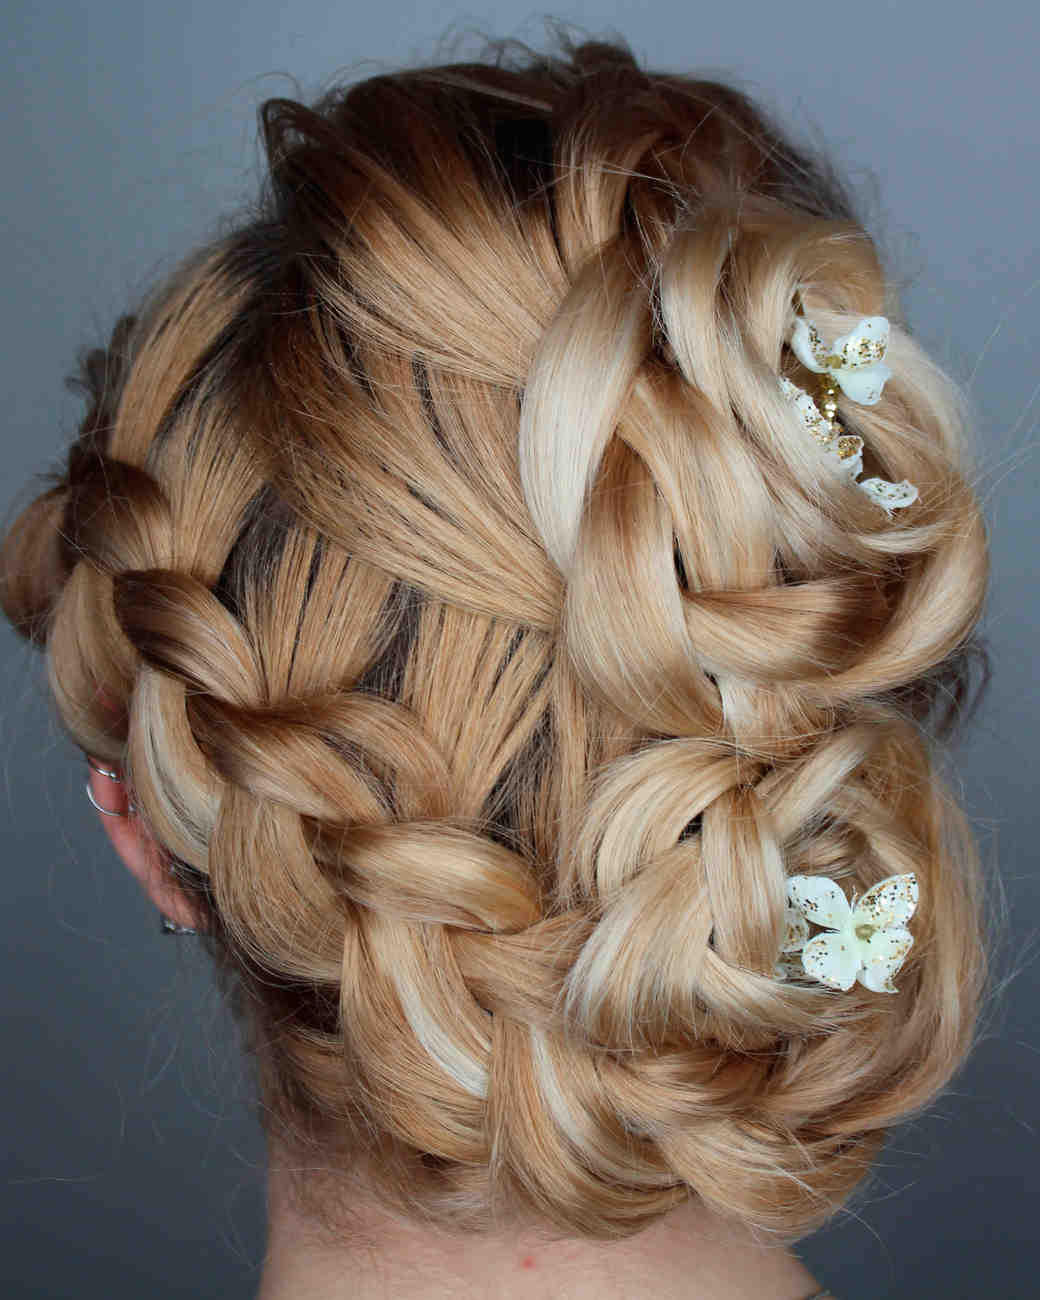 the-new-braid-regal-braided-updo-1215.jpg